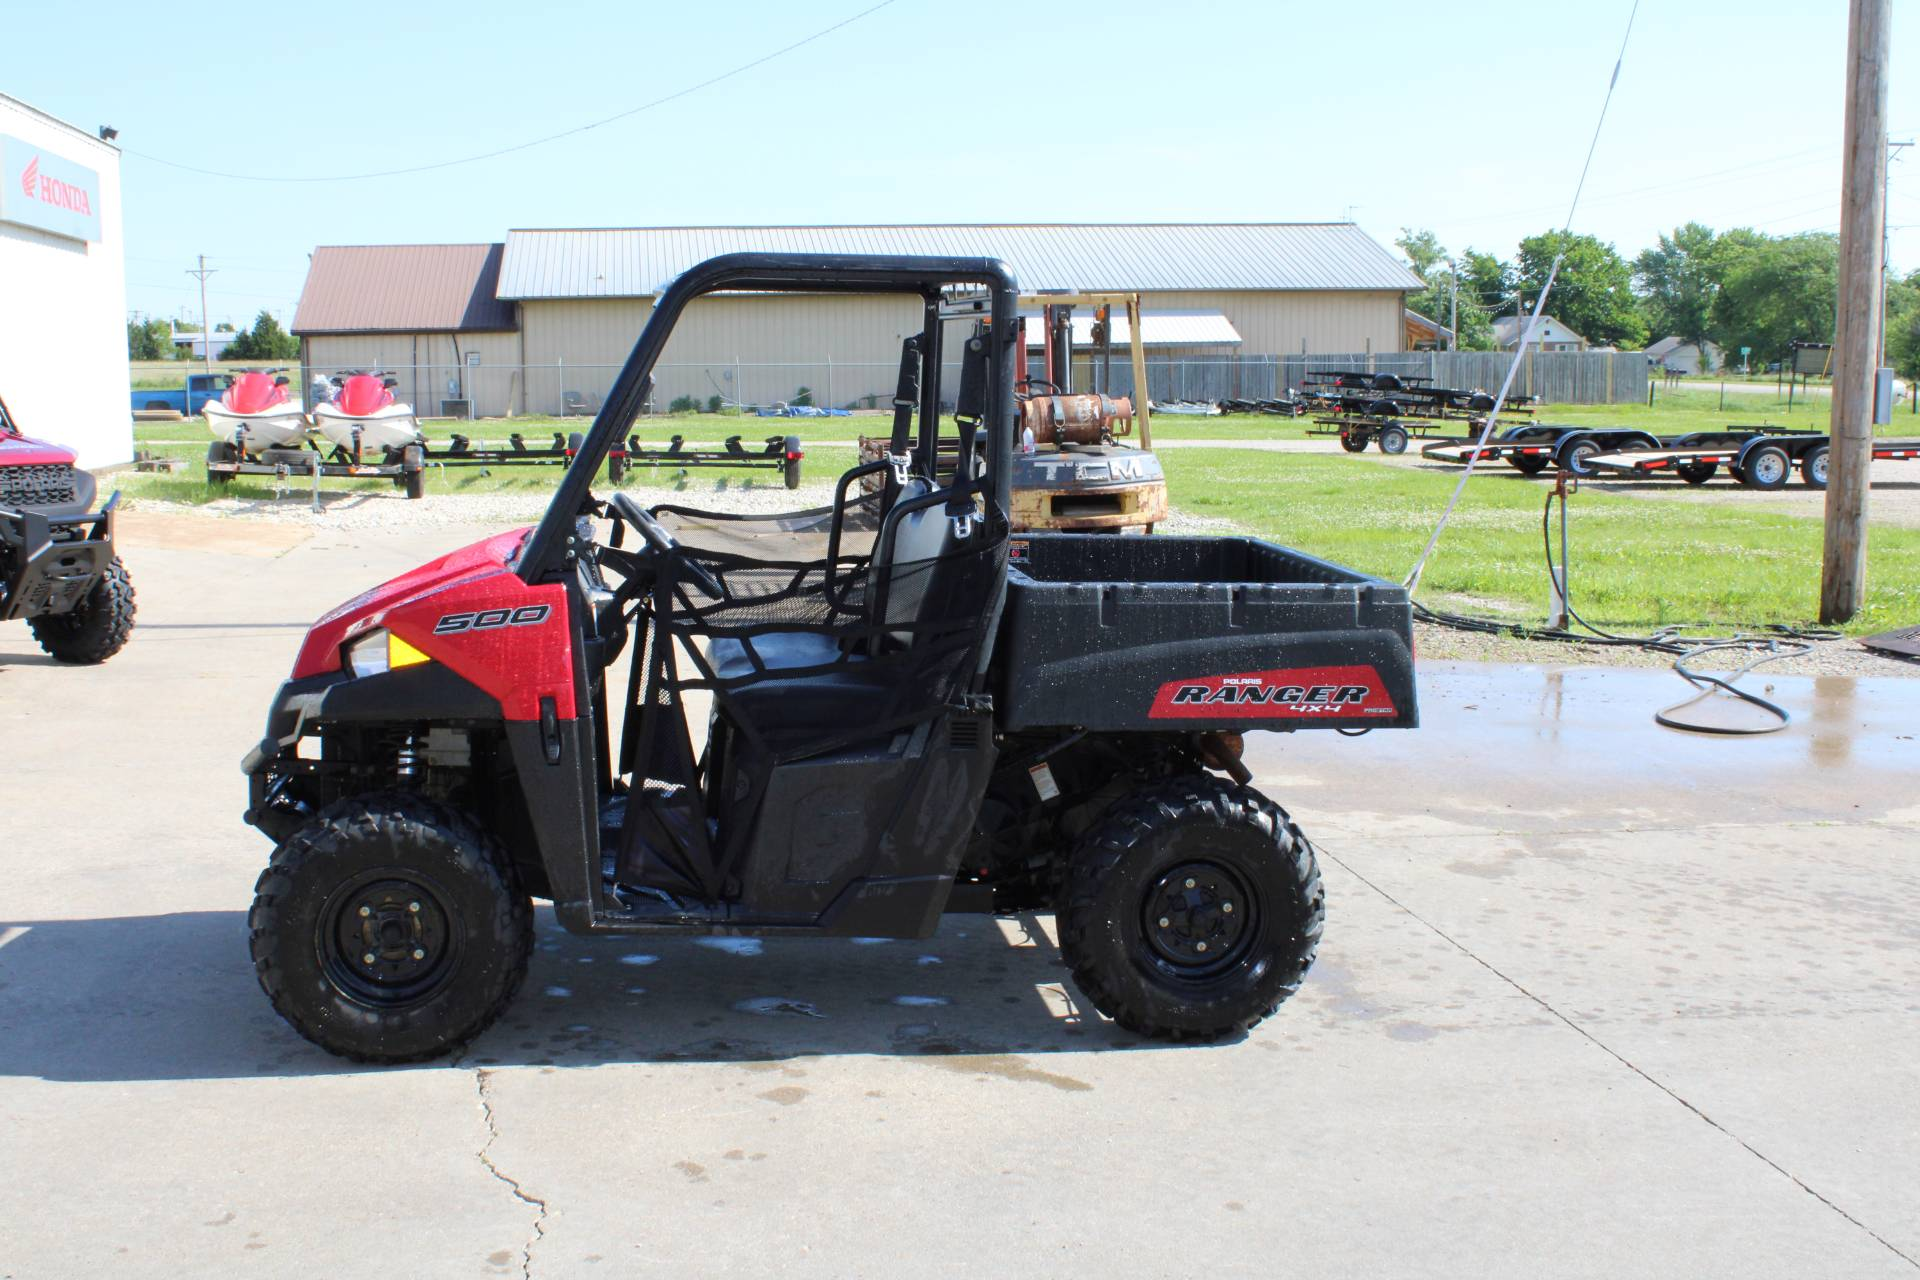 2018 Polaris Ranger 500 in Chanute, Kansas - Photo 3